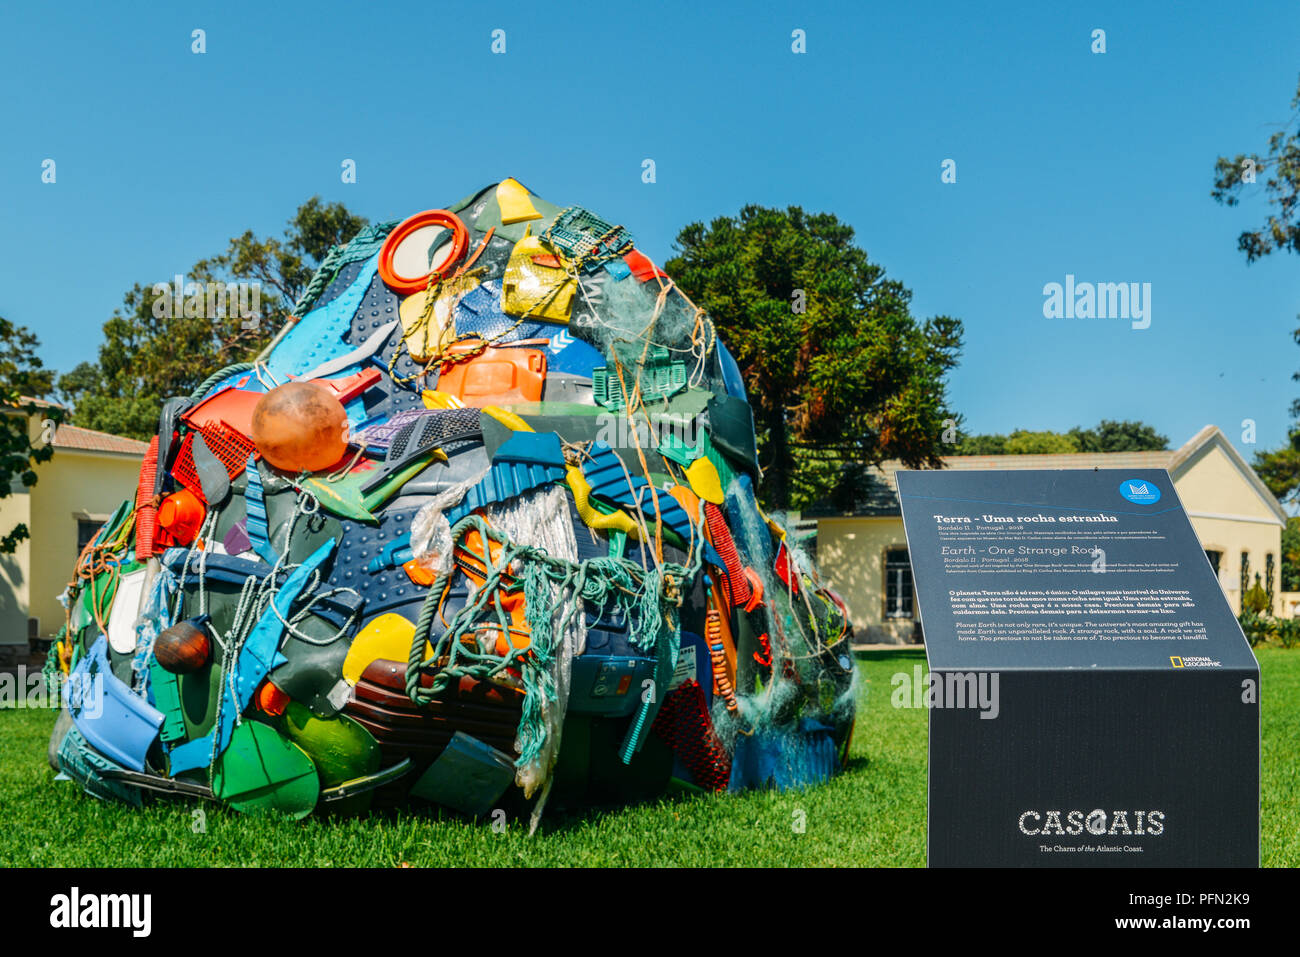 Terra - Uma Rocha Estranha', or 'One Strange Rock' is an artistic installation by Bordalo II in the Museu do Mar, Cascais, Portugal - Stock Image